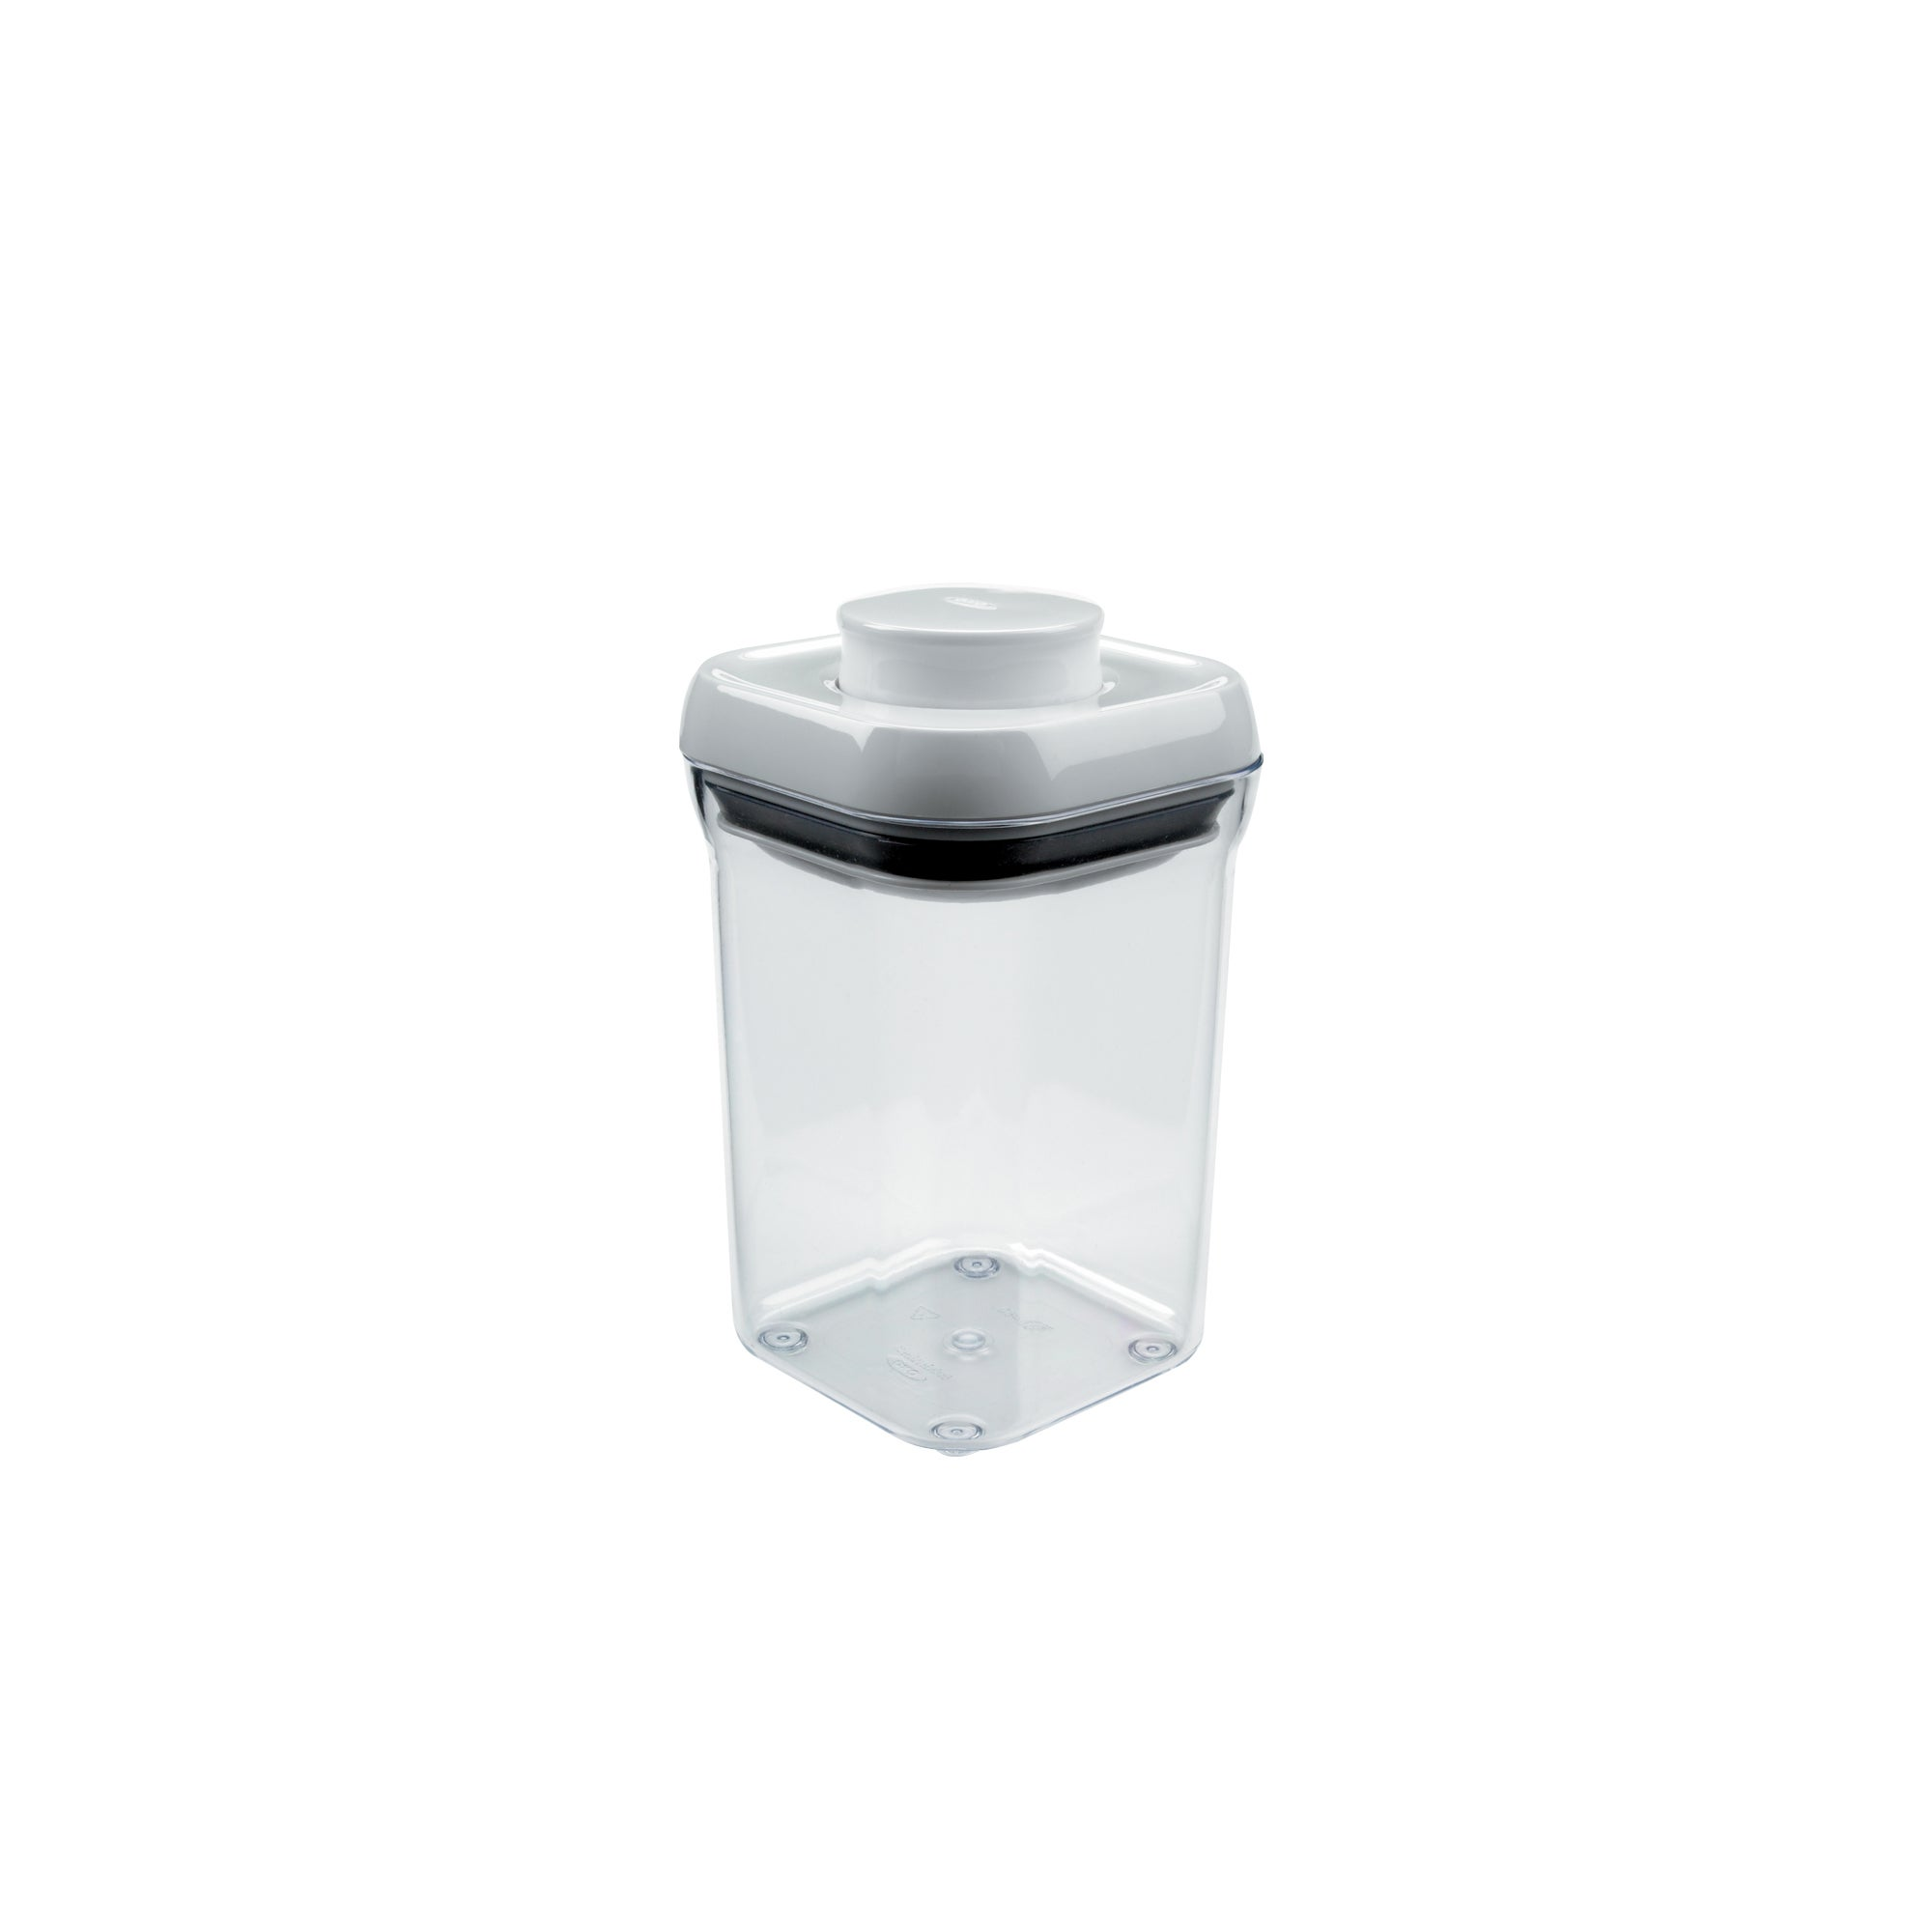 OXO Good Grips Small Square Pop Container